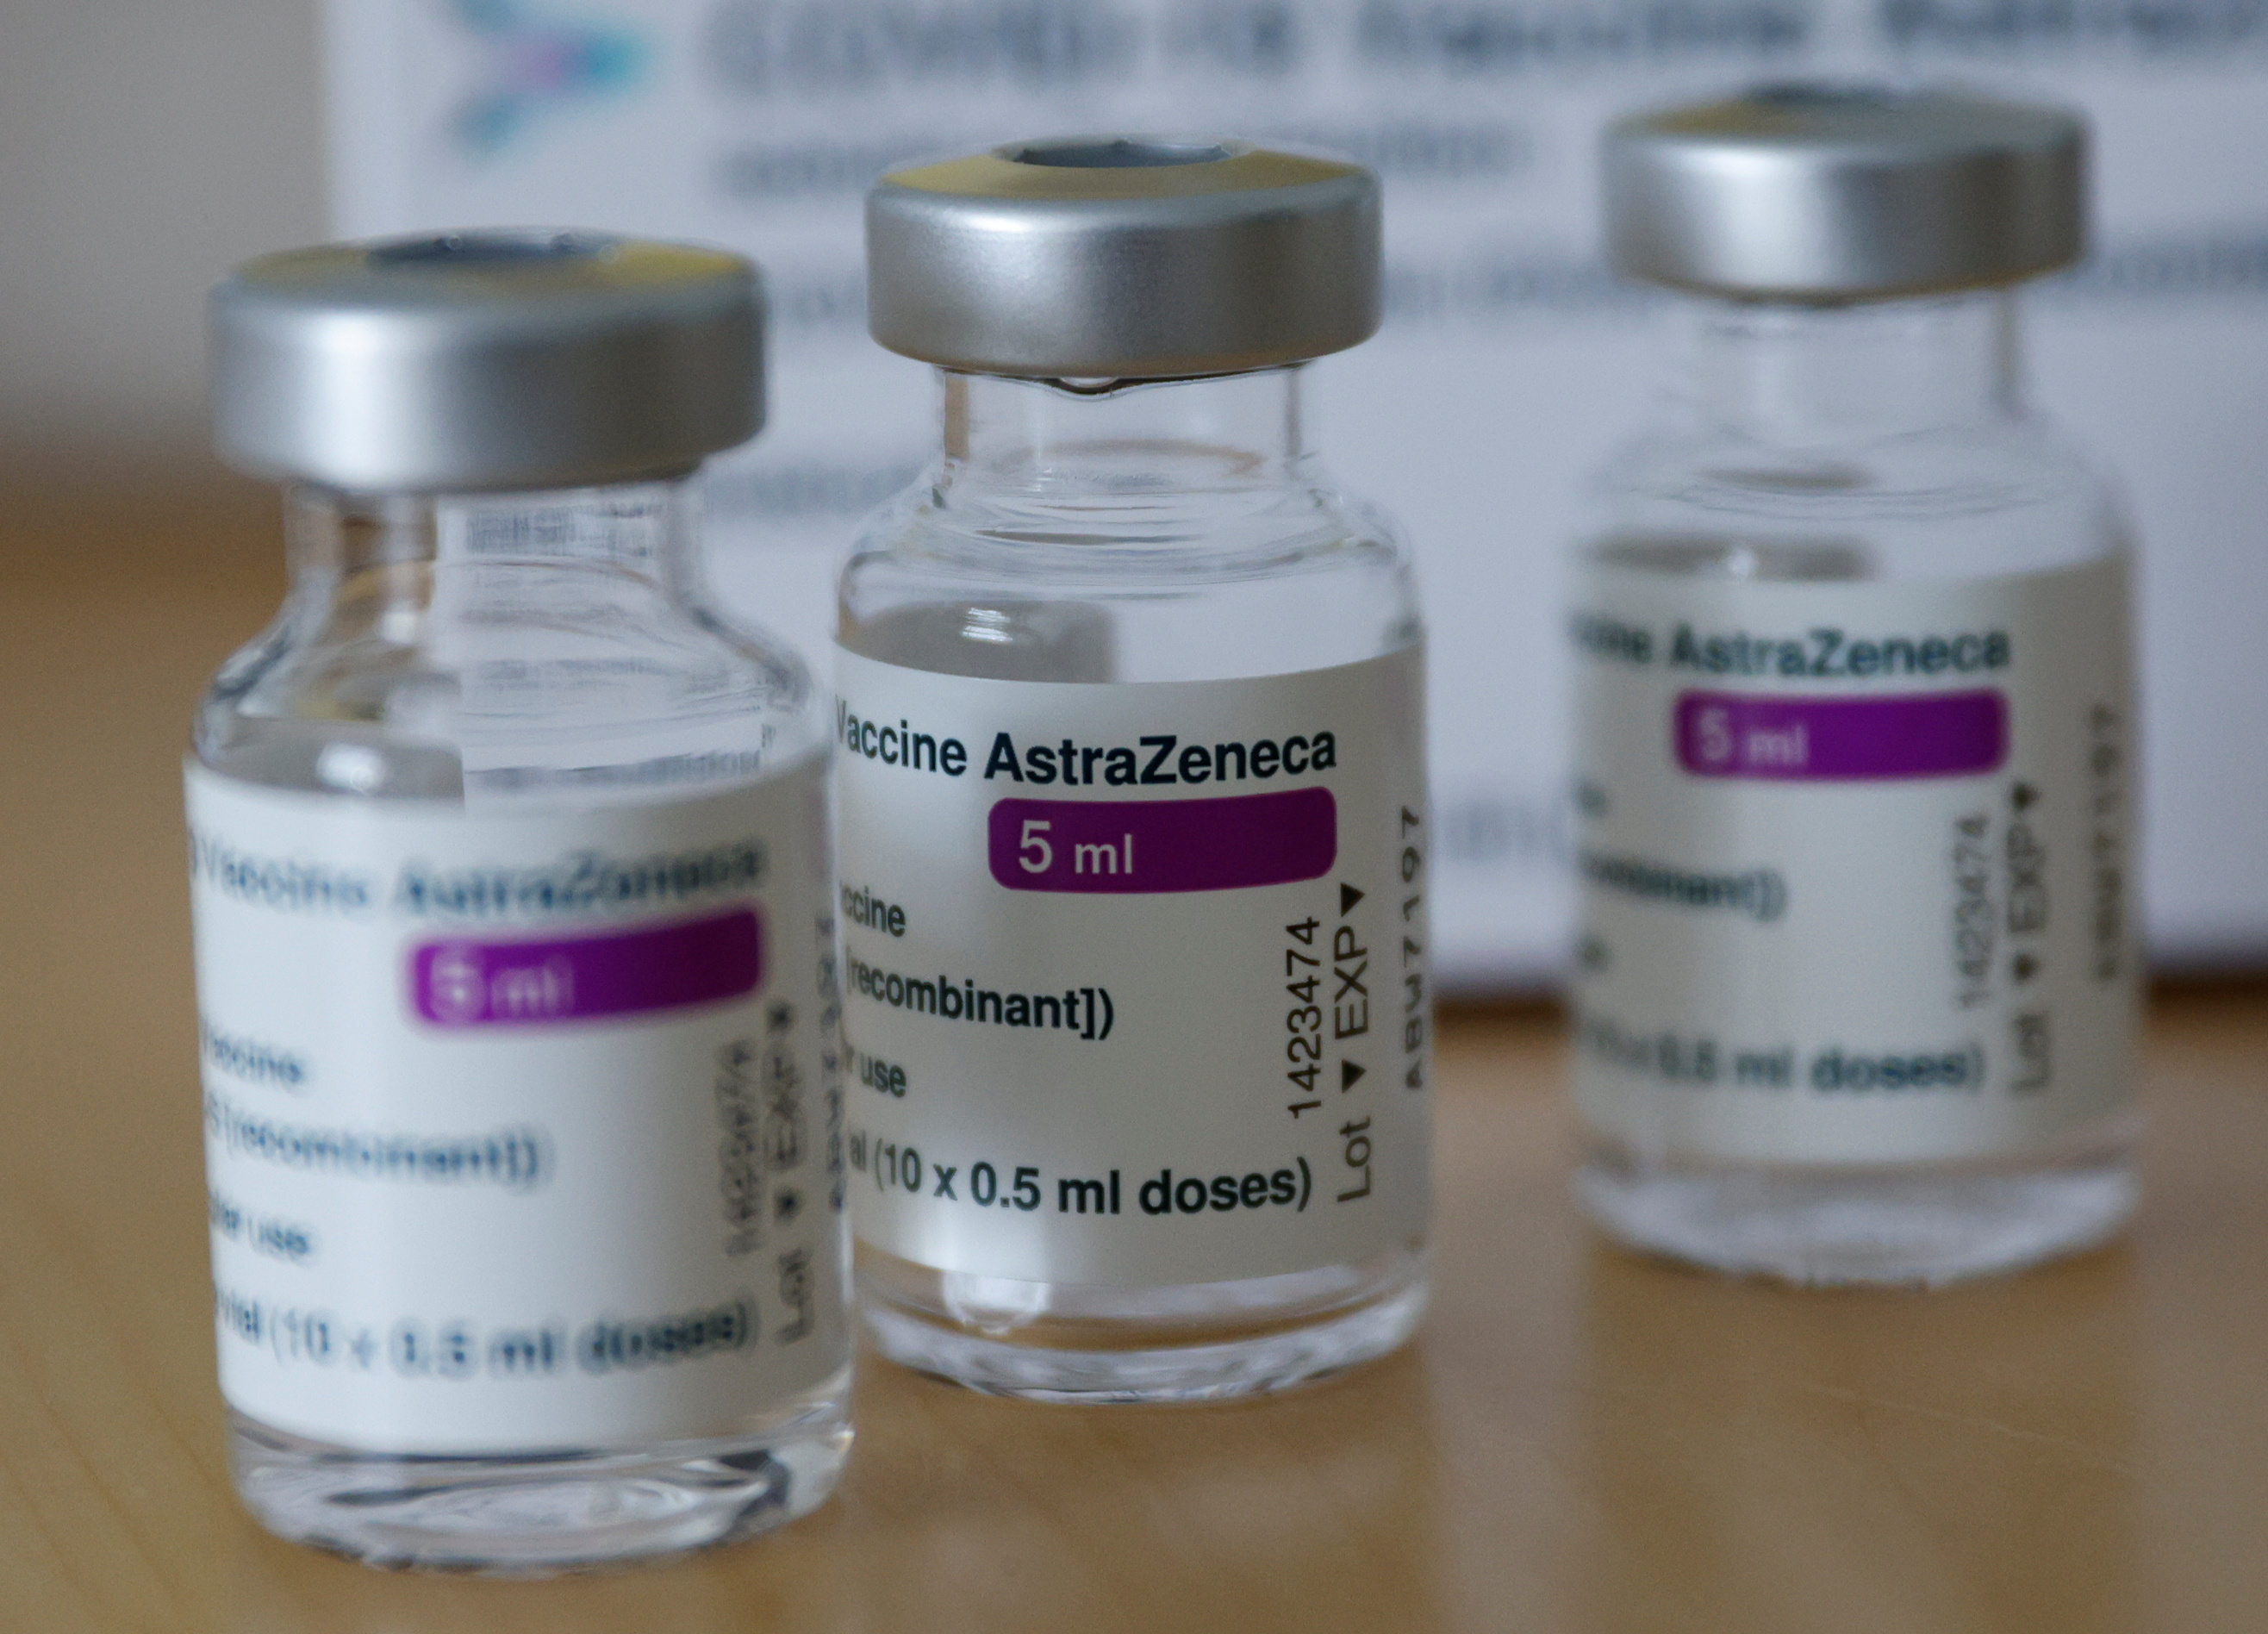 Vials of the AstraZeneca's COVID-19 vaccine are seen in a general practice of a doctor, as the spread of the coronavirus disease (COVID-19) continues, in Vienna, Austria April 30, 2021.  REUTERS/Leonhard Foeger